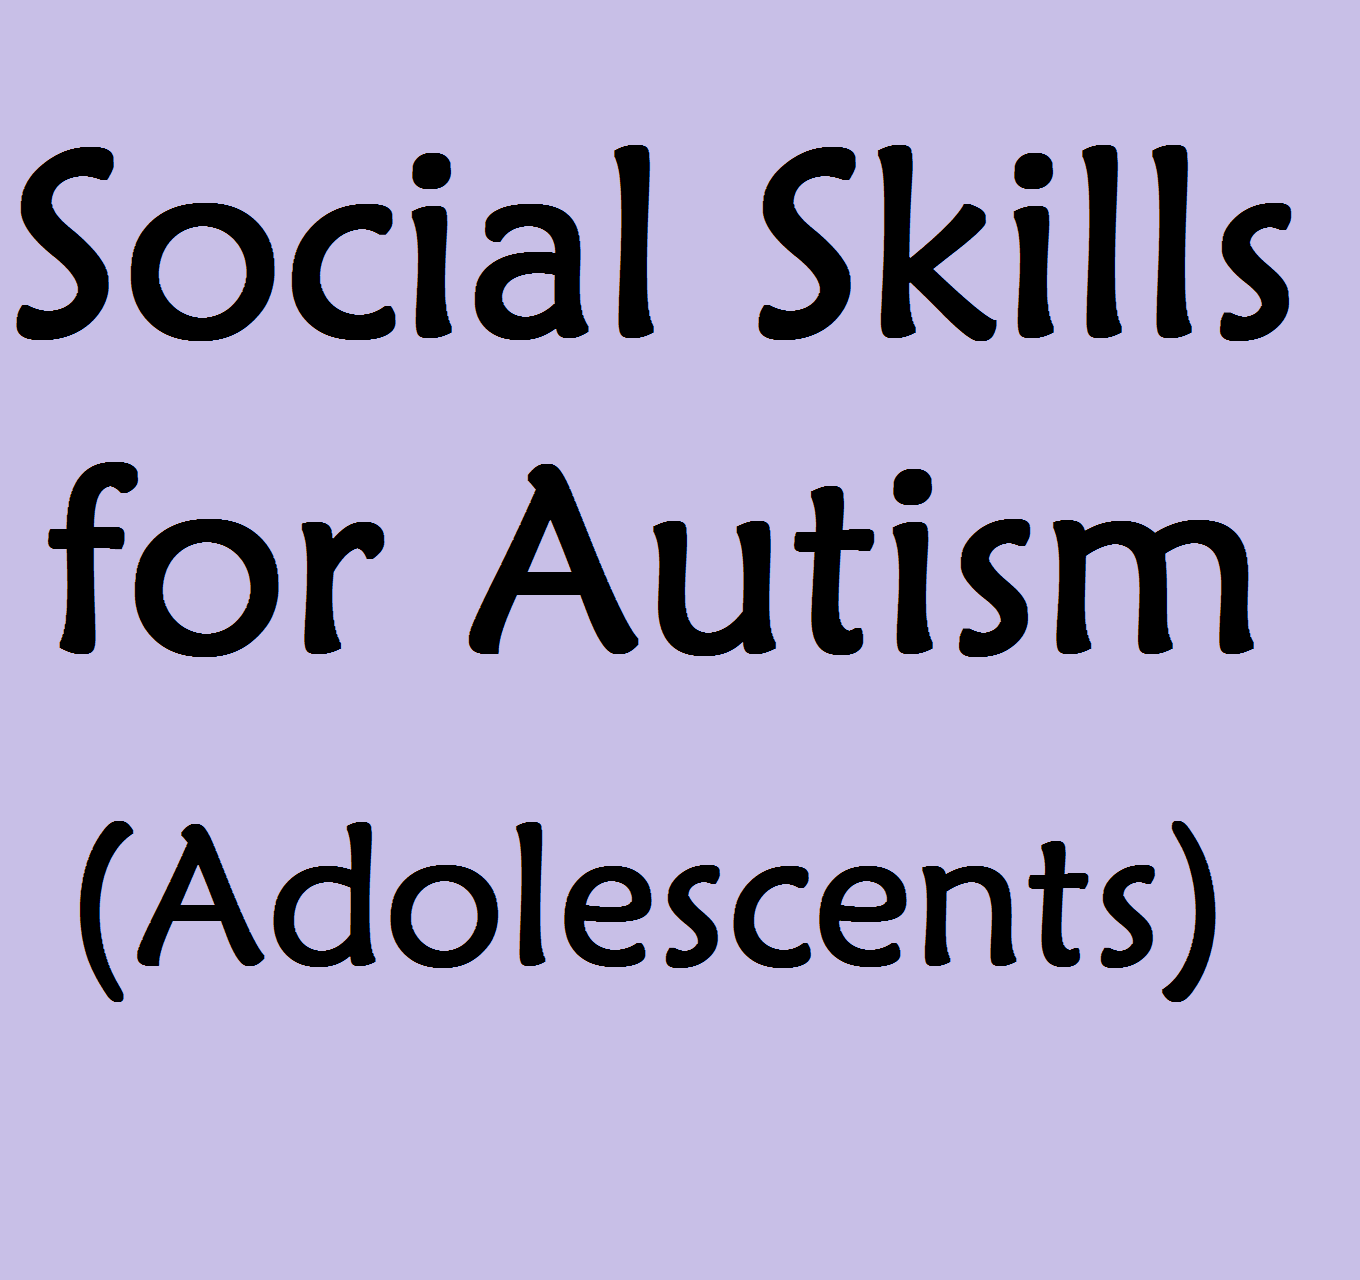 Social Skills For Autism Adolescents And Children With